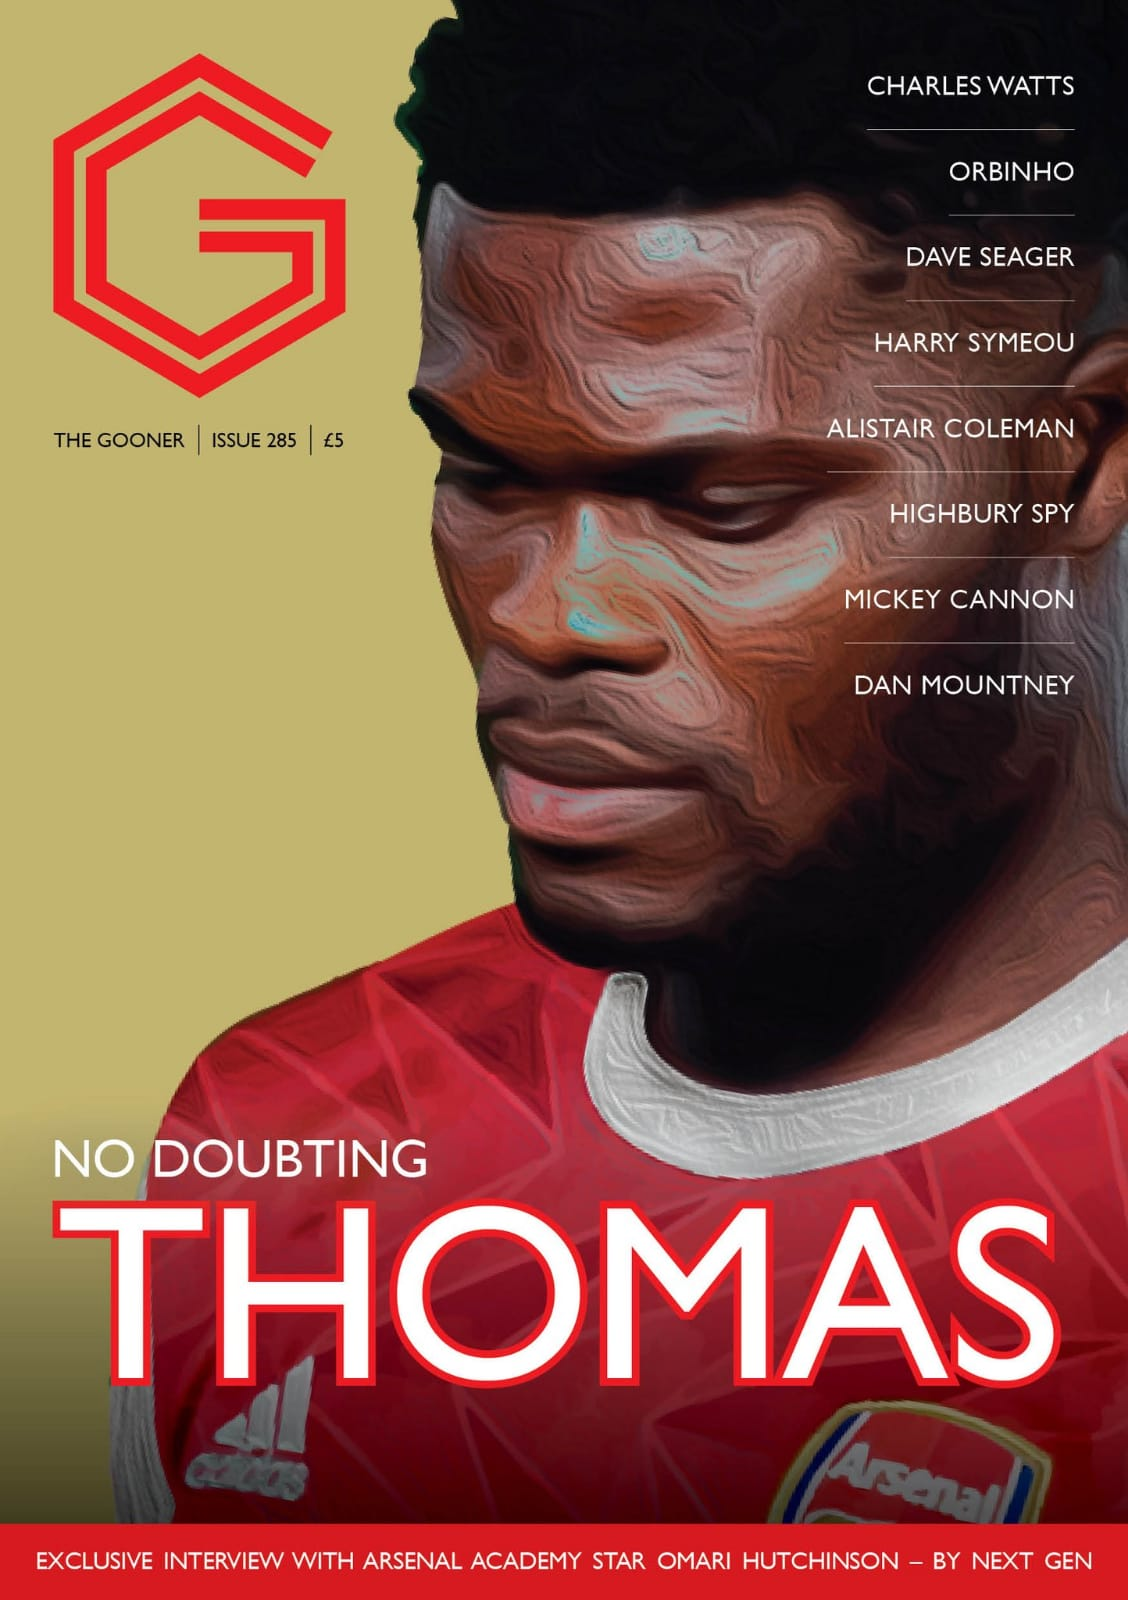 Current Issue - The Gooner 285 (European addresses)